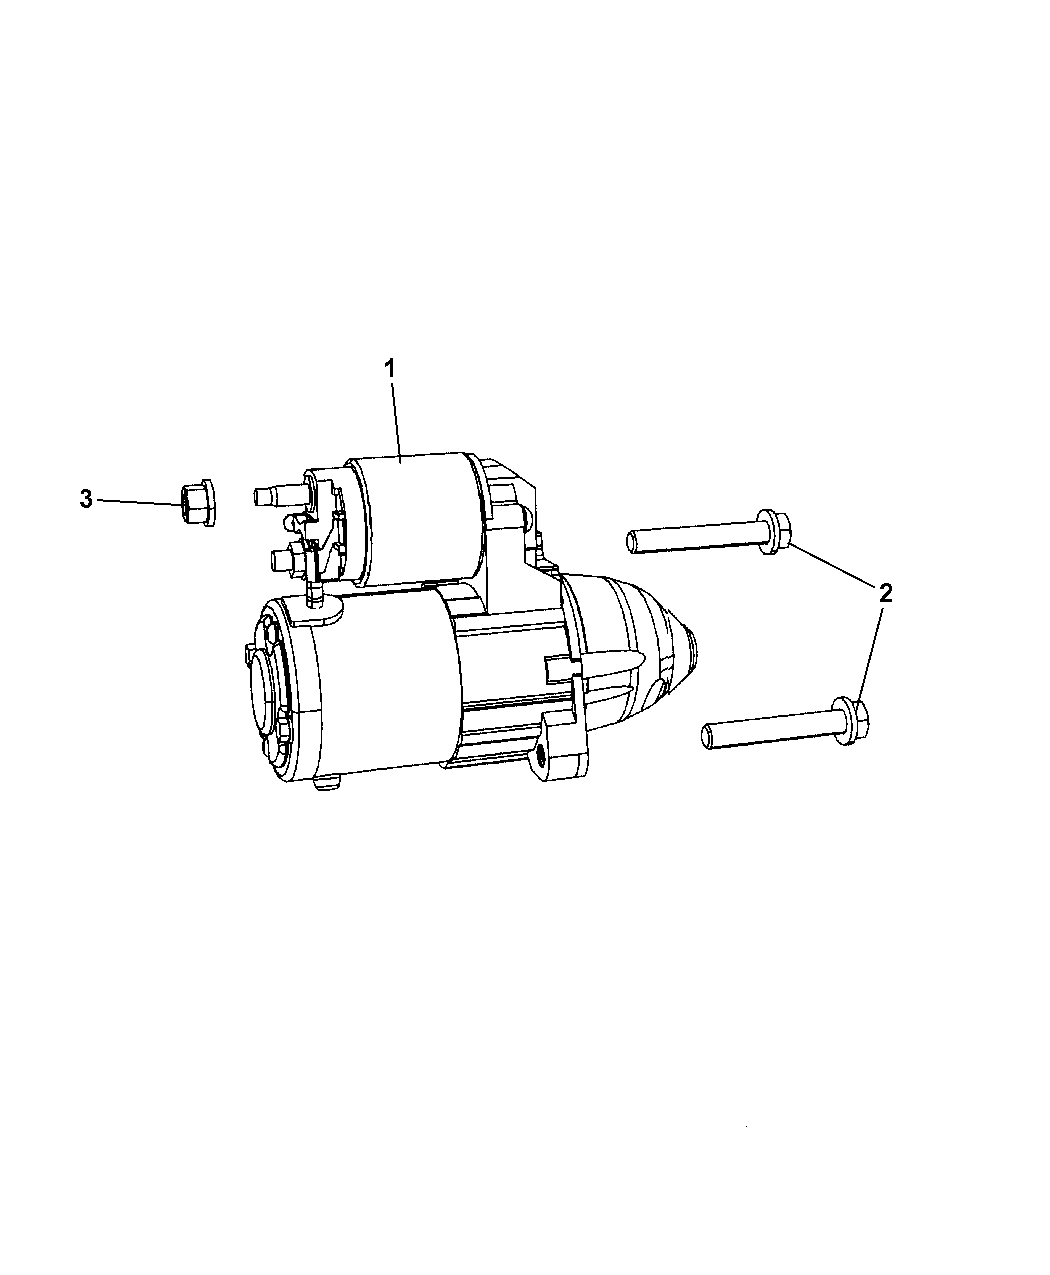 2012 Jeep Patriot Starter & Related Parts - Thumbnail 1